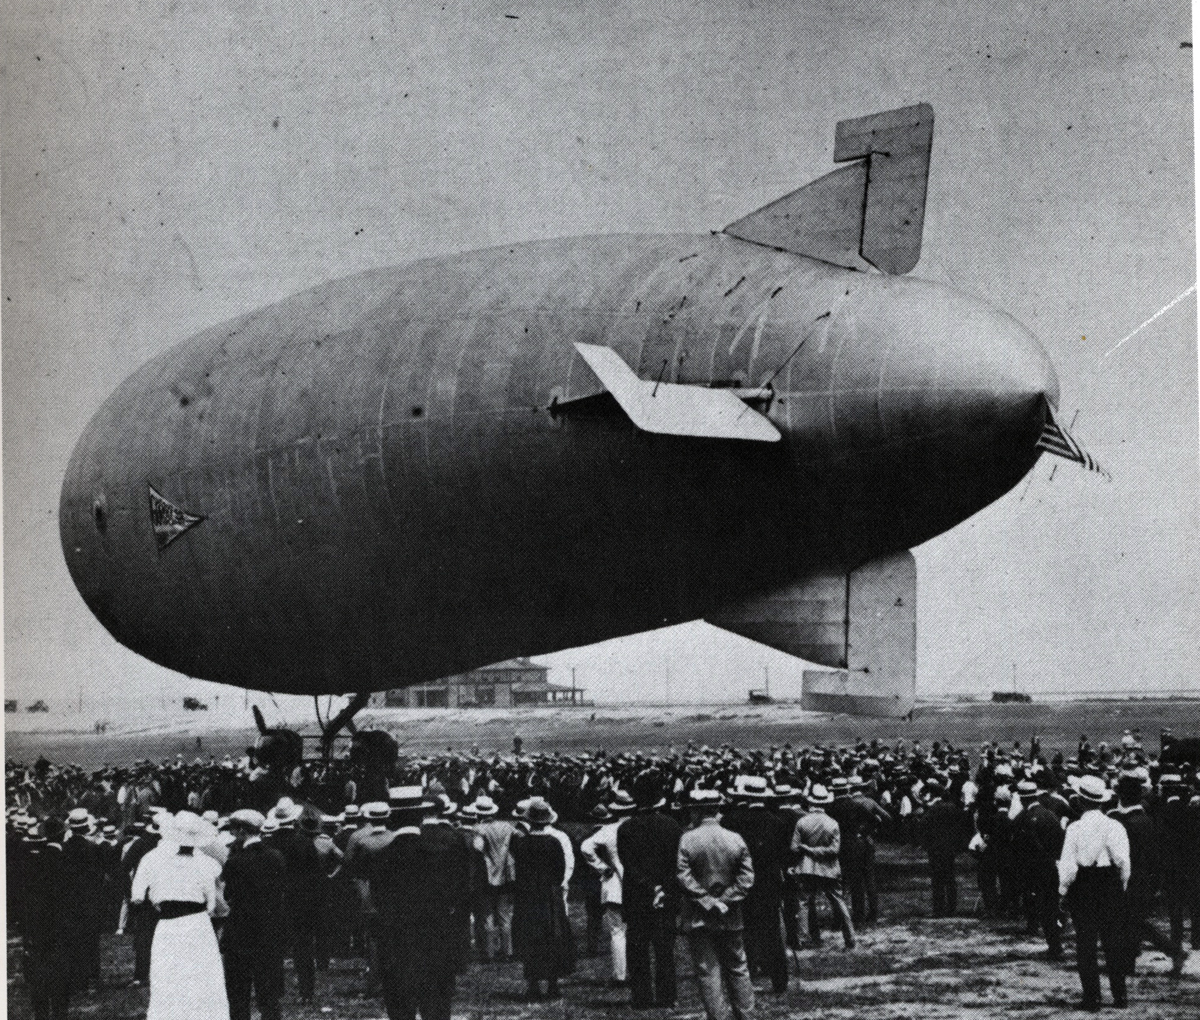 Wingfoot Express Airship Disaster